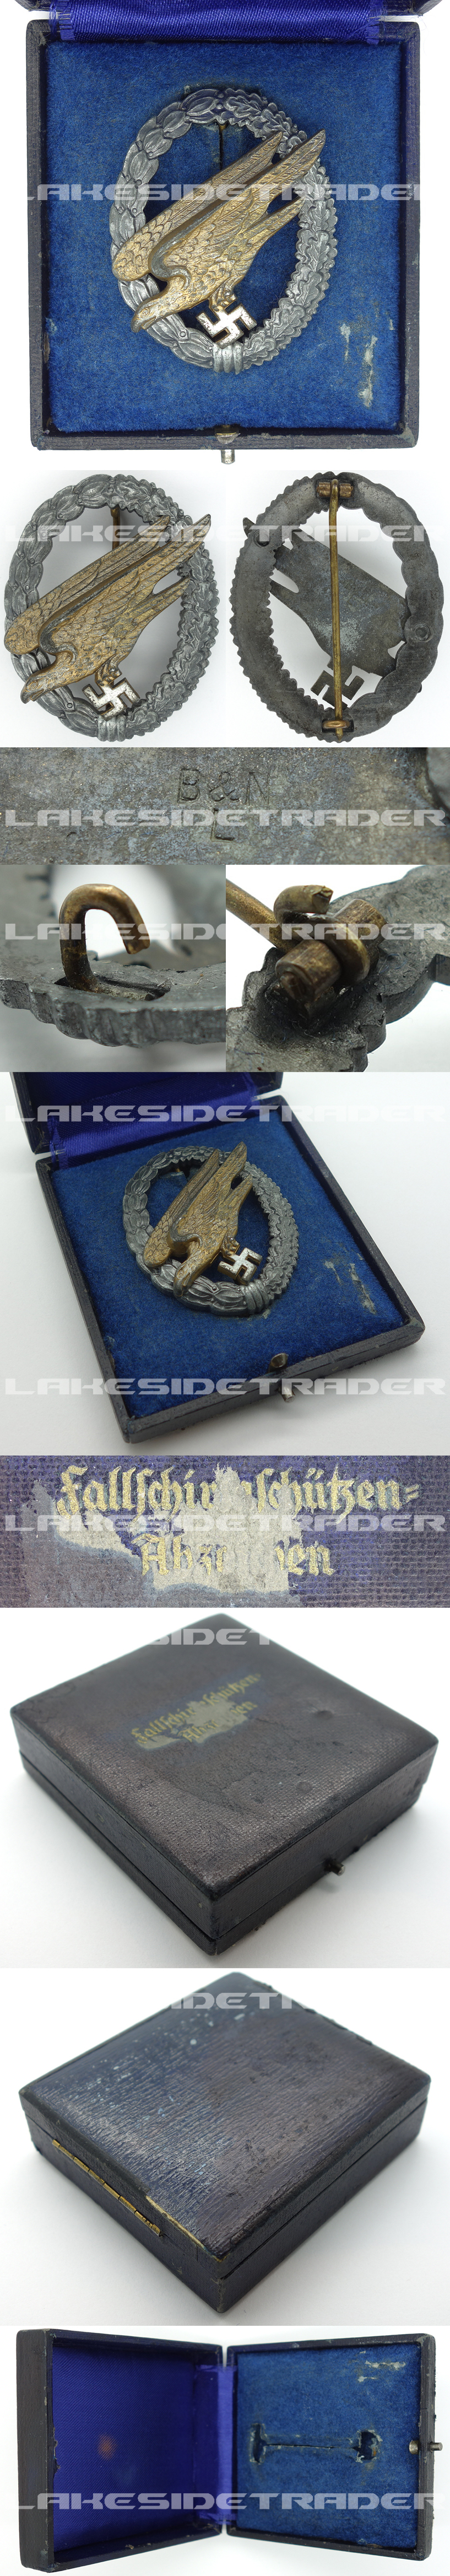 Cased Luftwaffe Paratrooper Badge by B&N